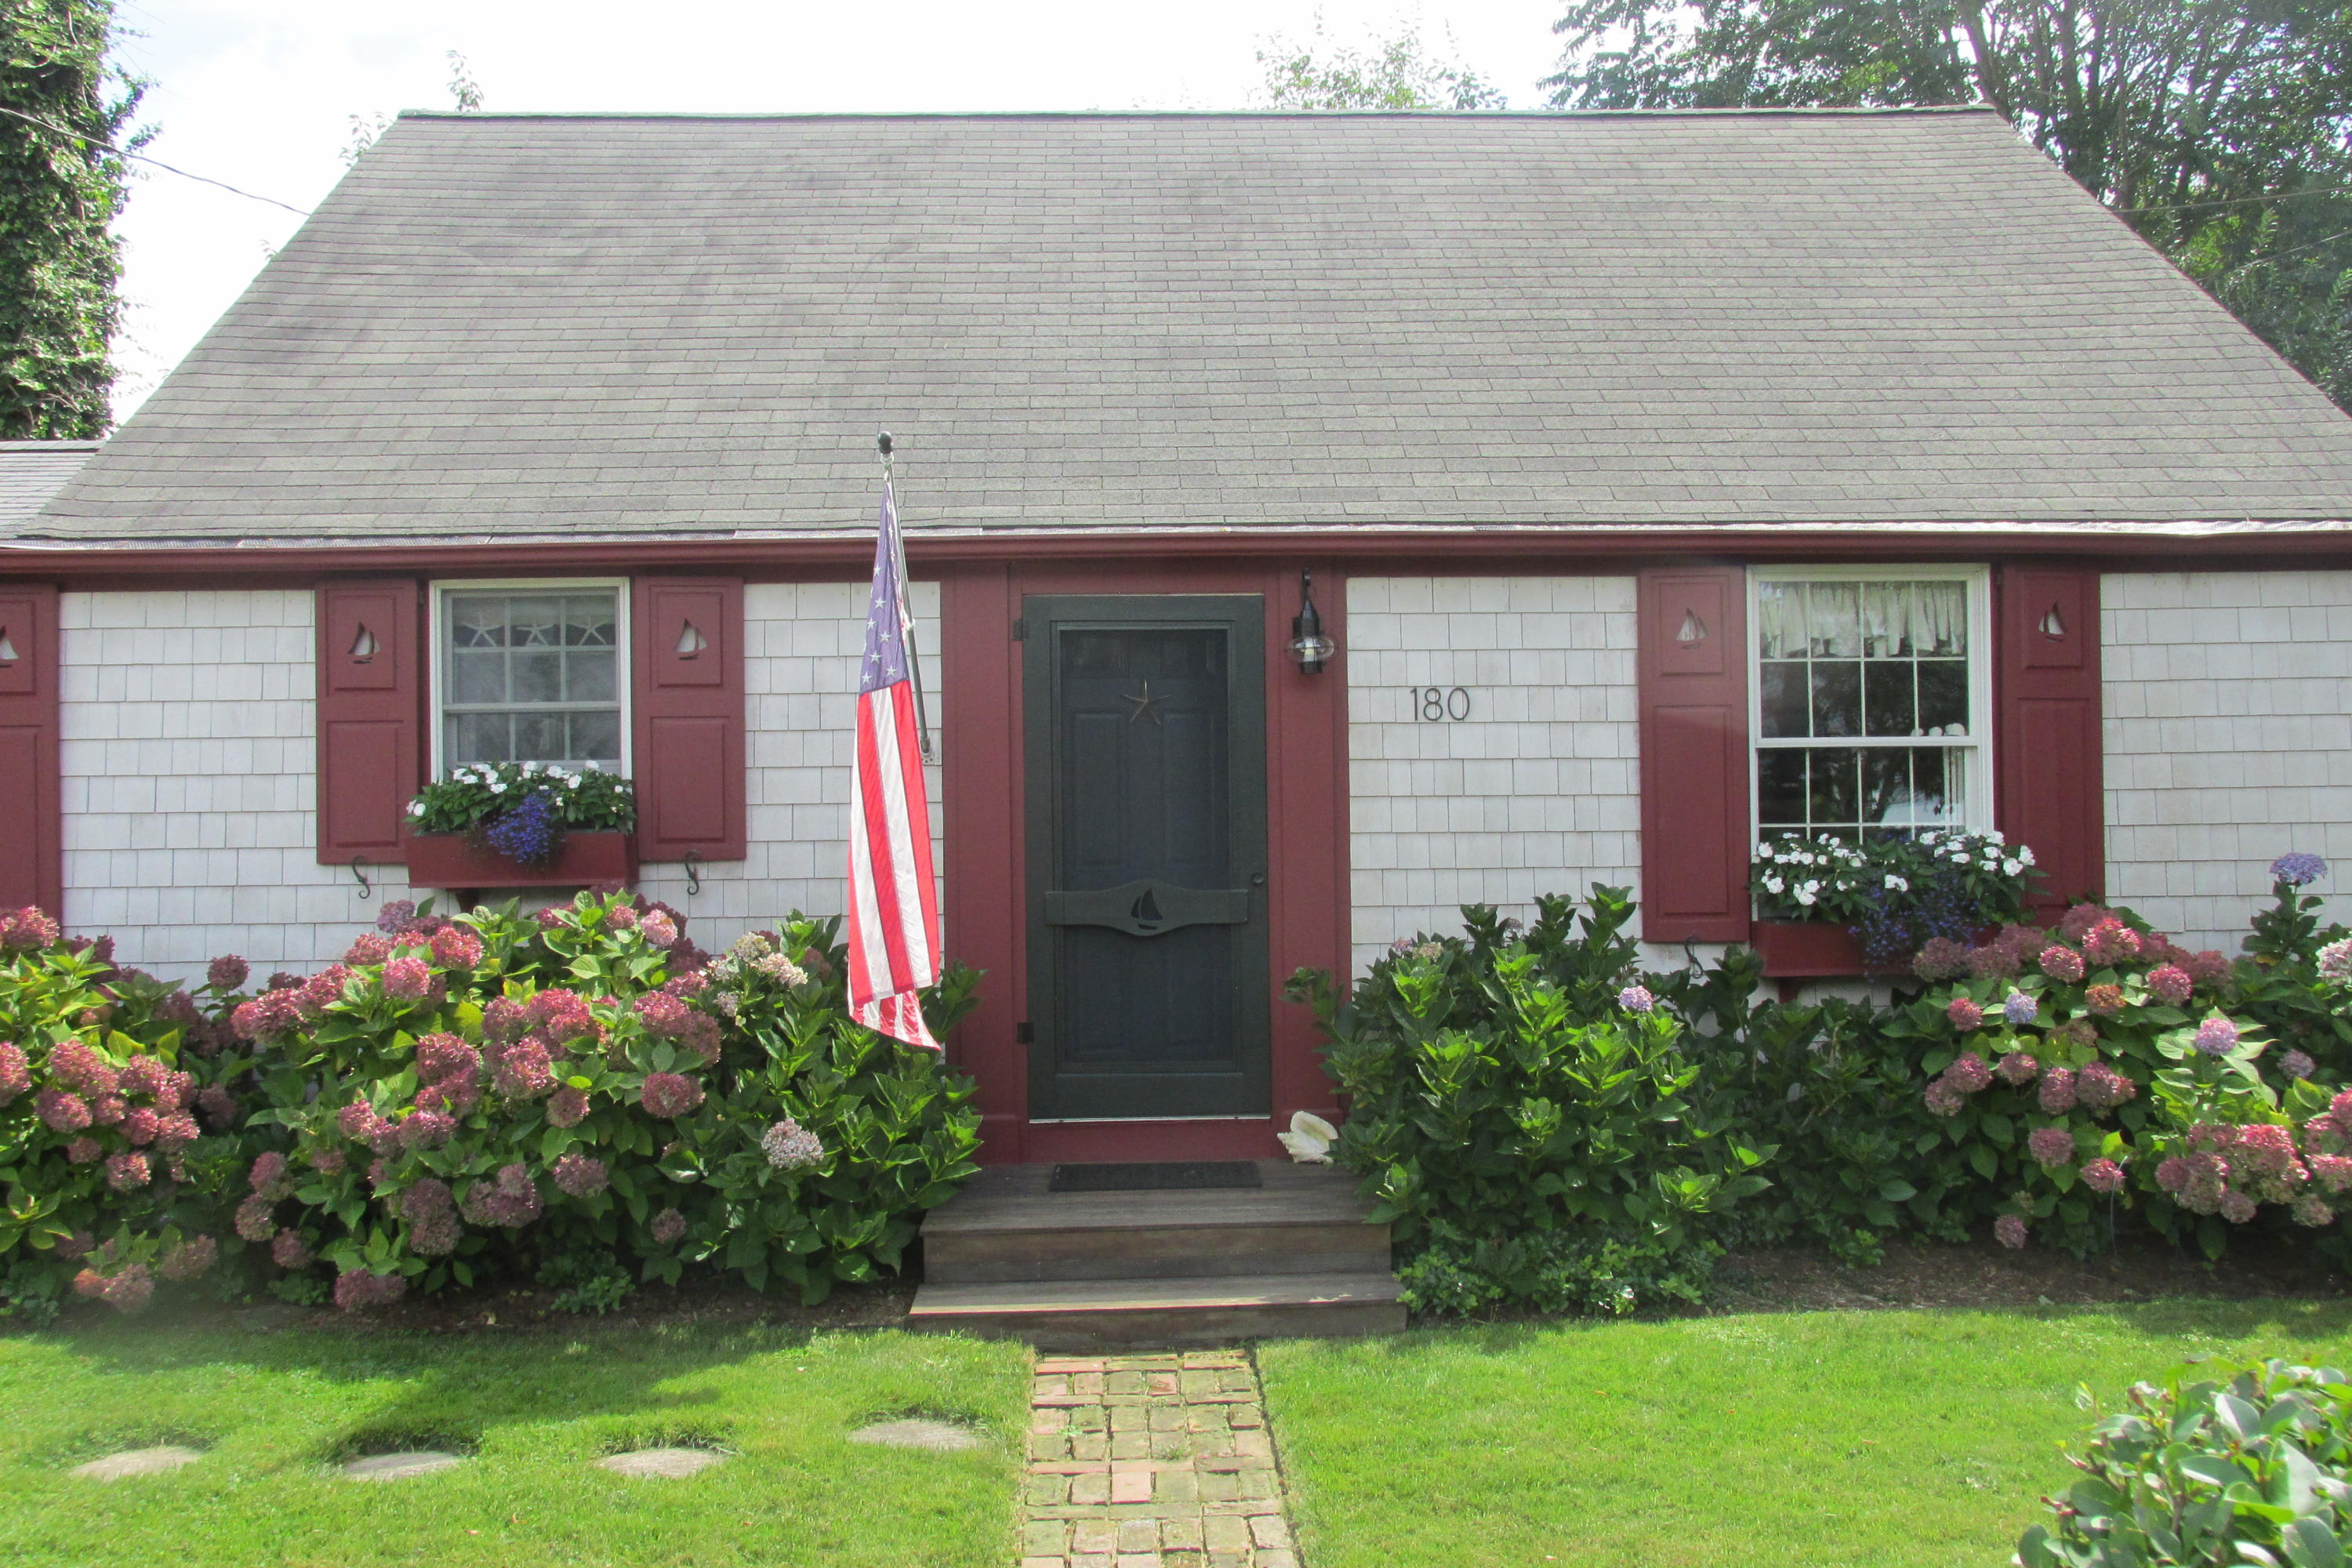 180 Old Harbor Road, Chatham